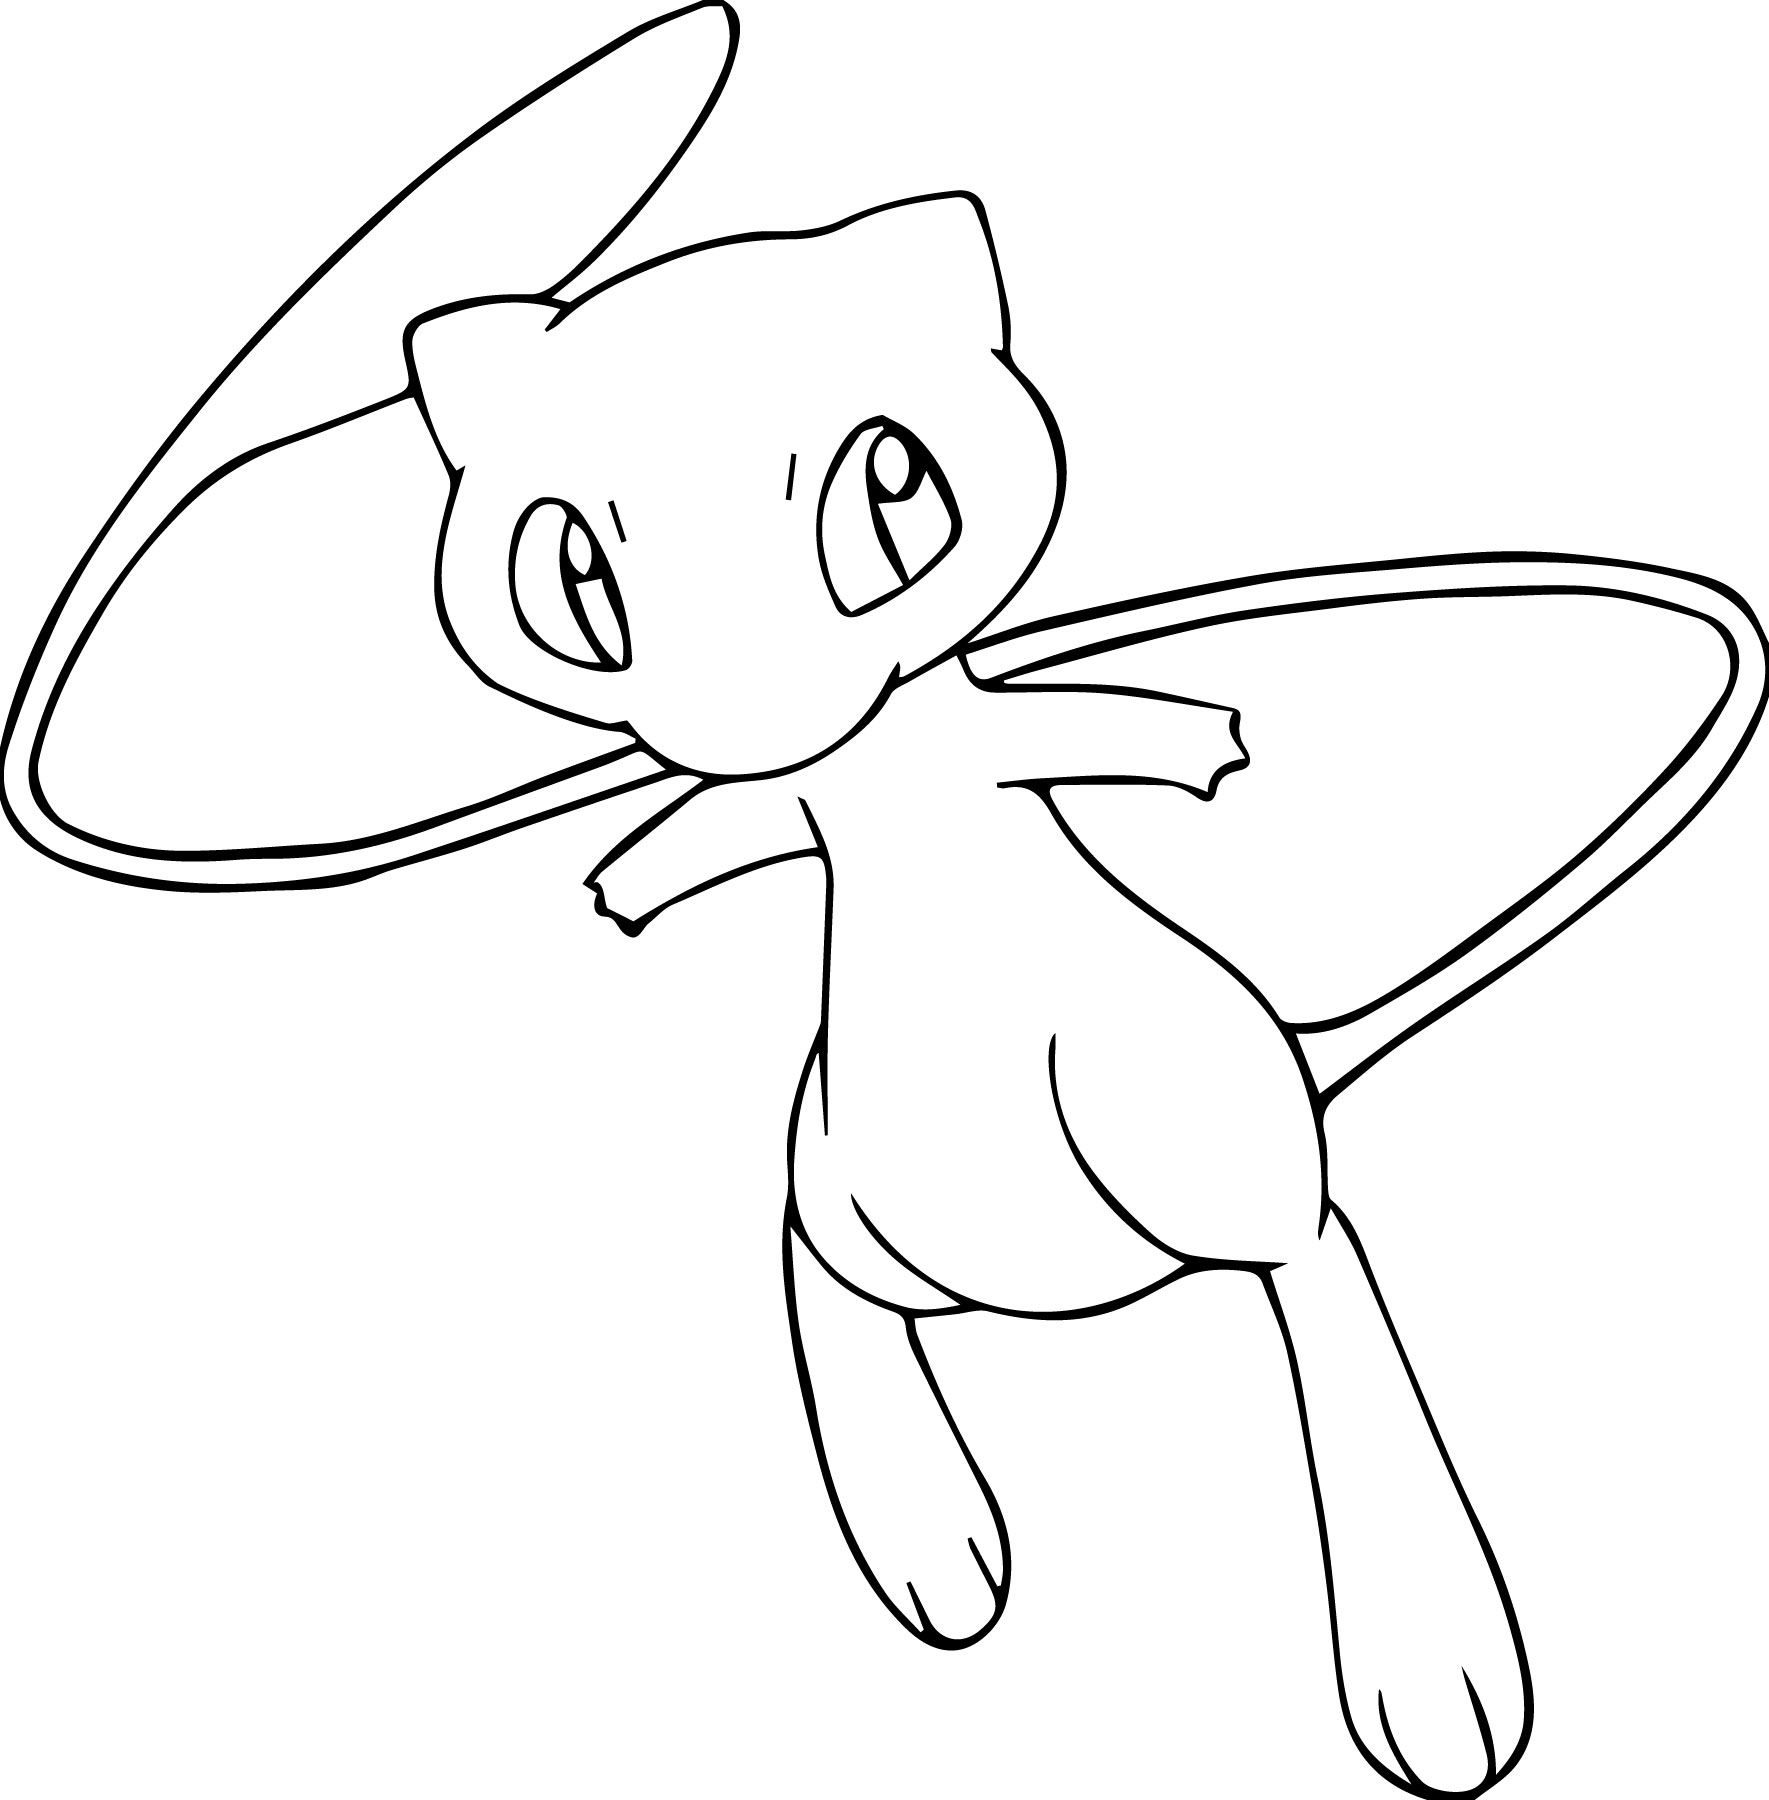 Mew Coloring Page Pokemon Coloring Pages Pokemon Coloring